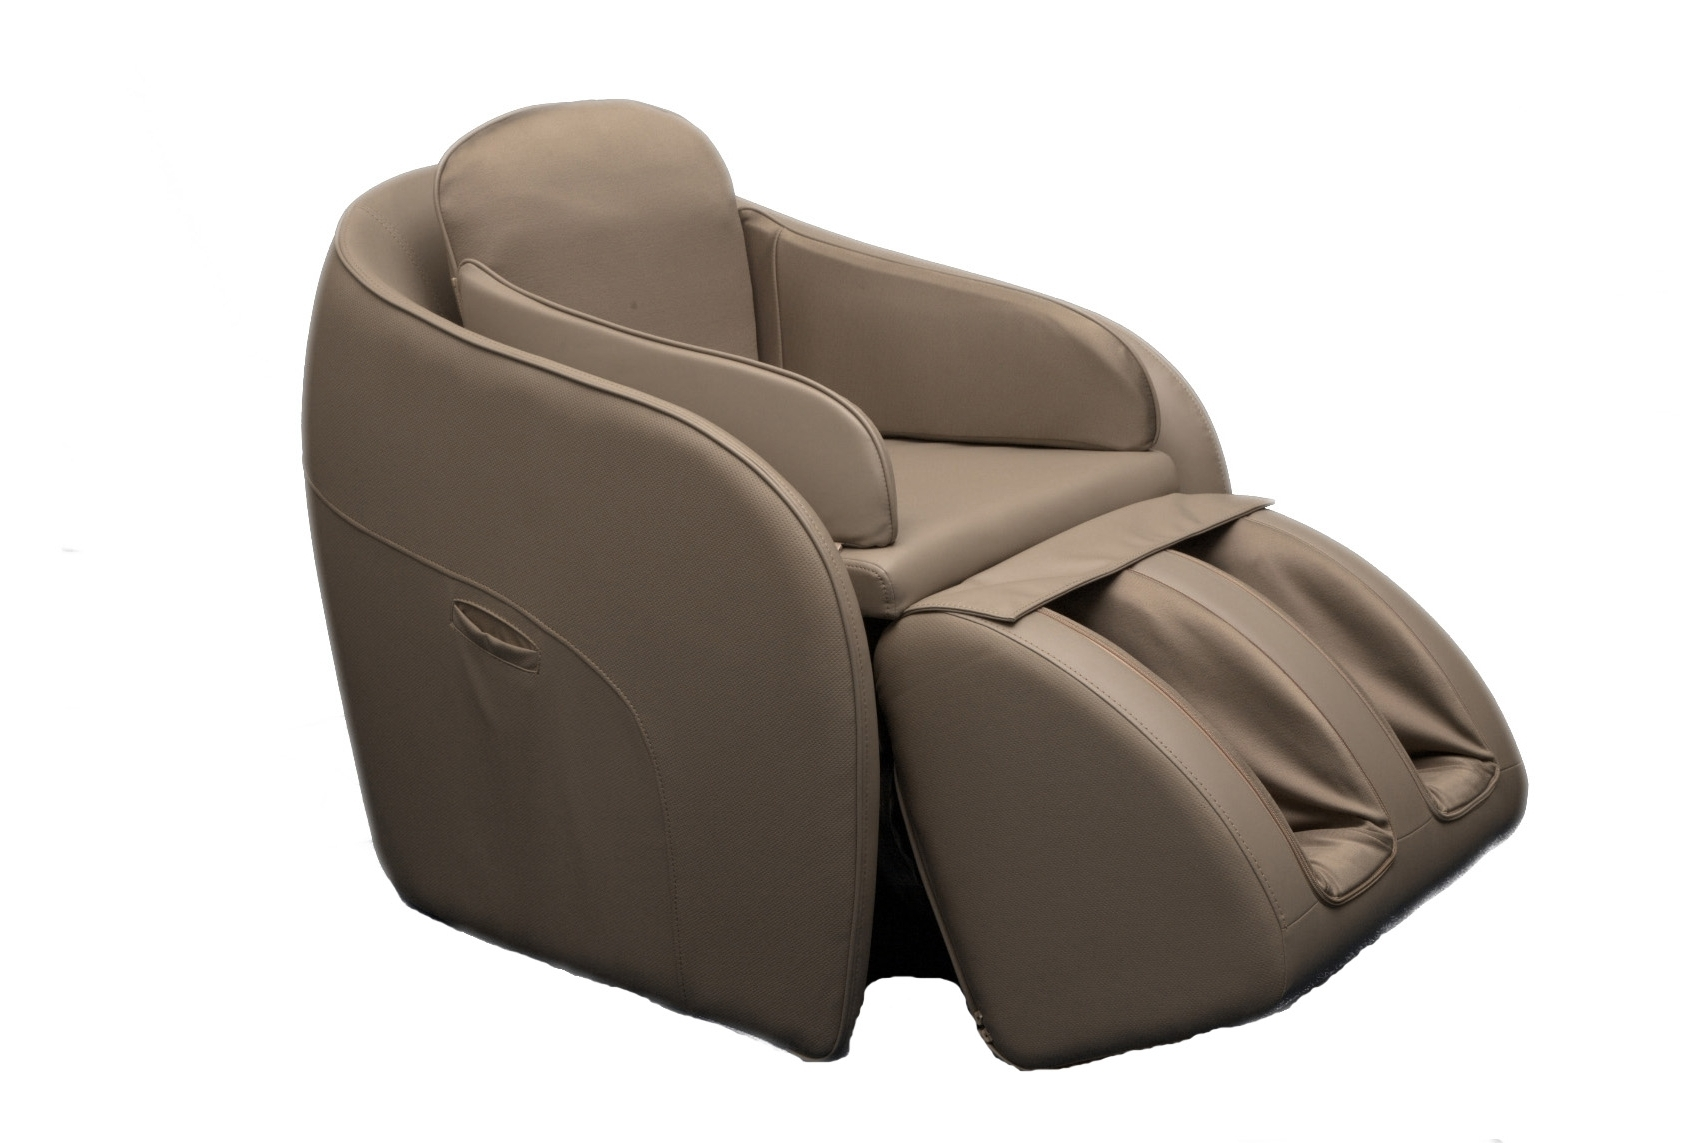 Modern Concept Foot Massage Chairs With Portable Foot Massage Sofa For Most Up To Date Foot Massage Sofas (View 11 of 15)